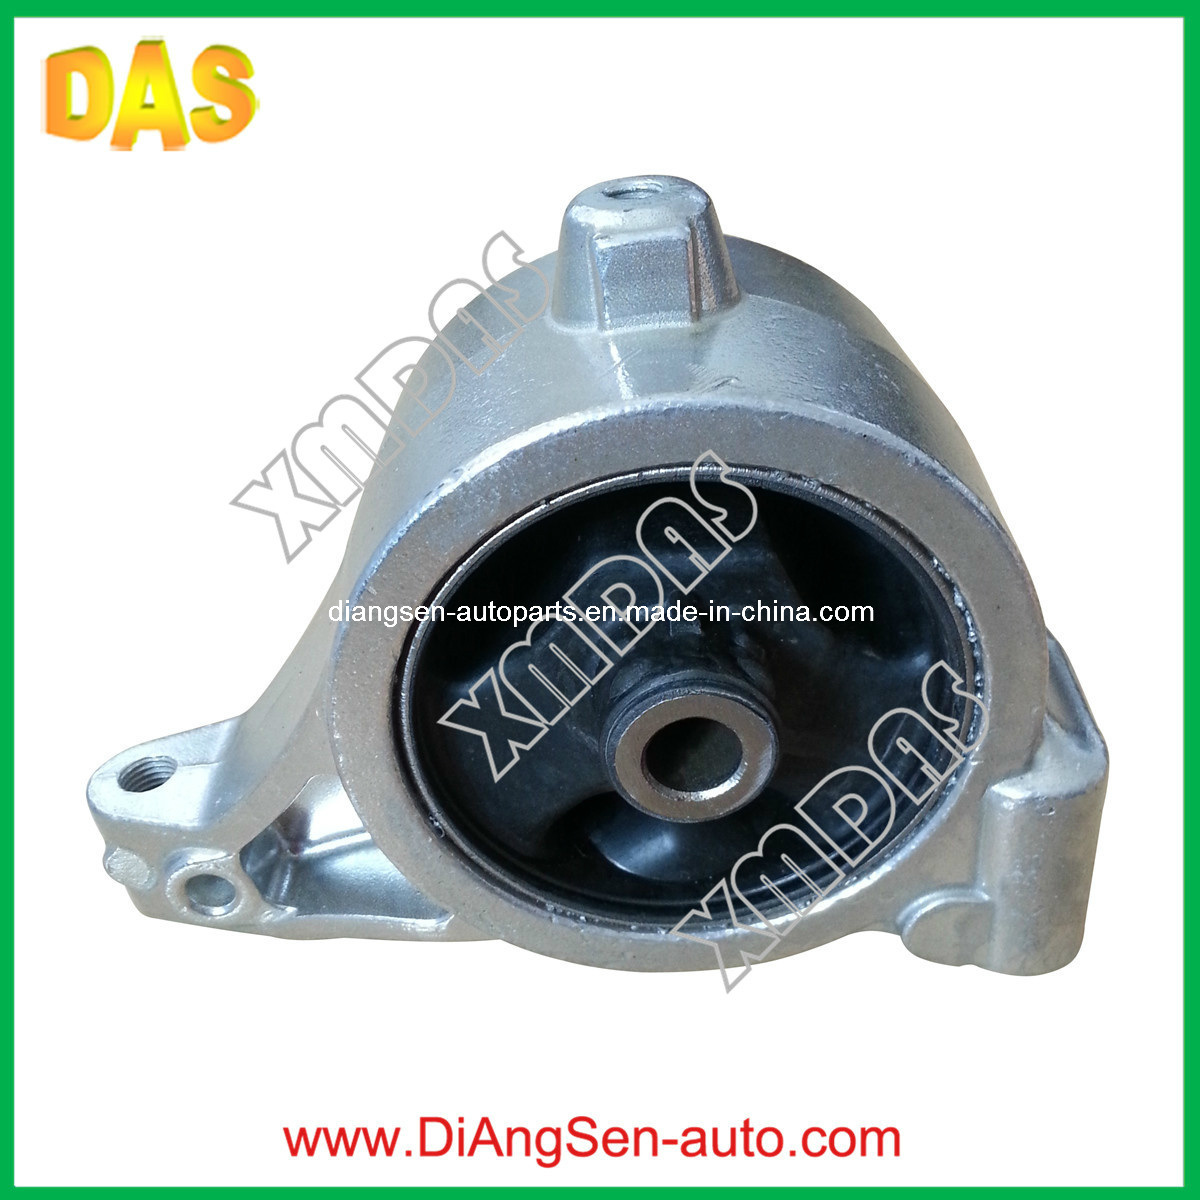 China Replacement Car Engine Mounts For Honda Acura 50810 S3v A01 China Car Engine Mounts Replacement Engine Mounts